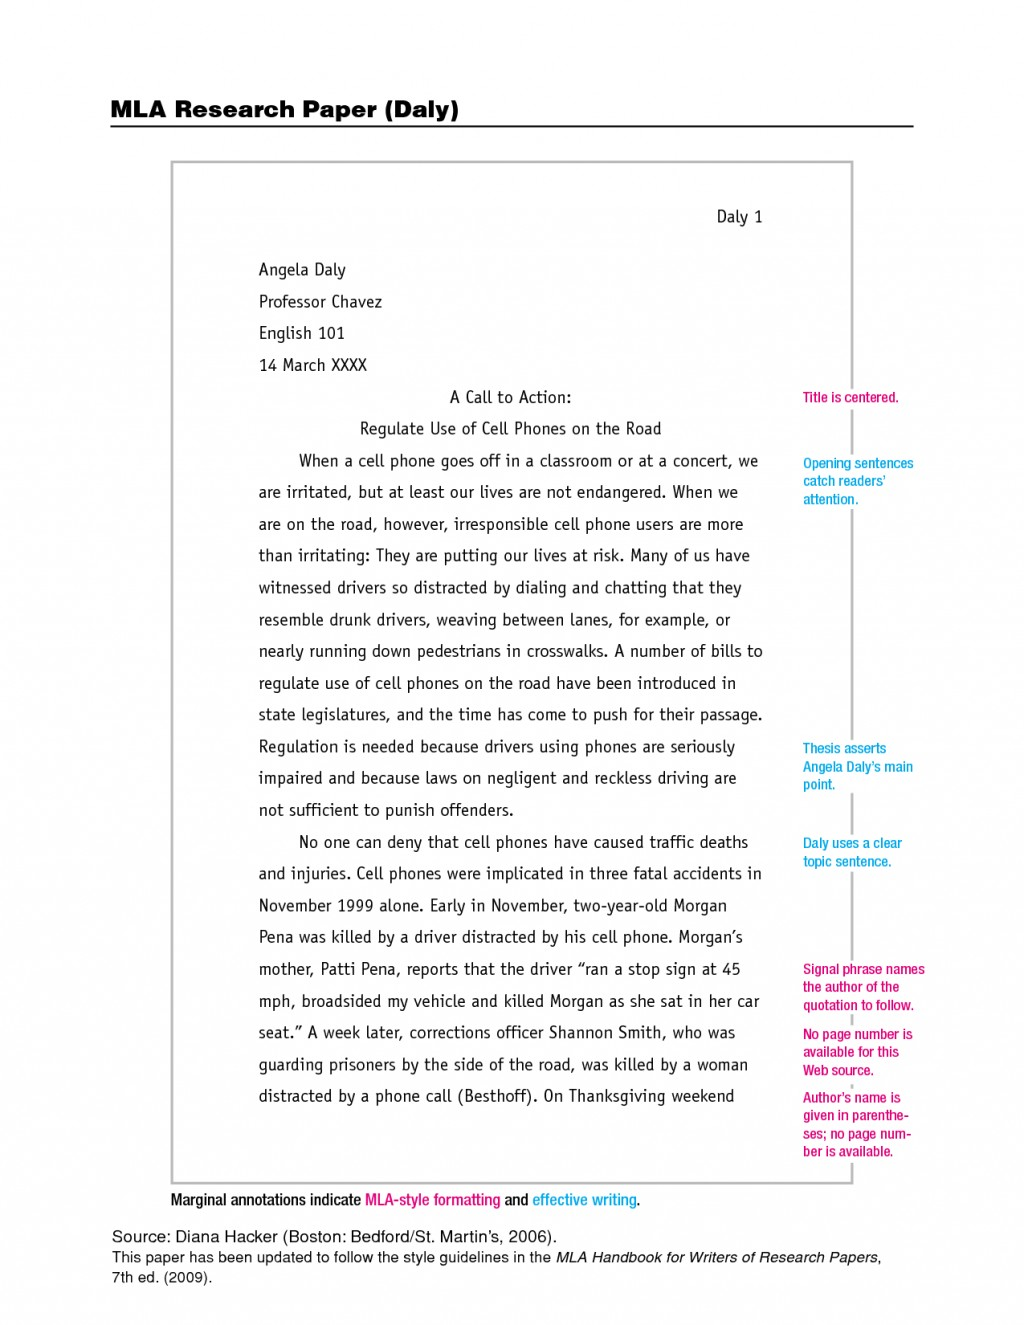 004 Mla Style Research Breathtaking Paper Template Writing A Outline Sample Large